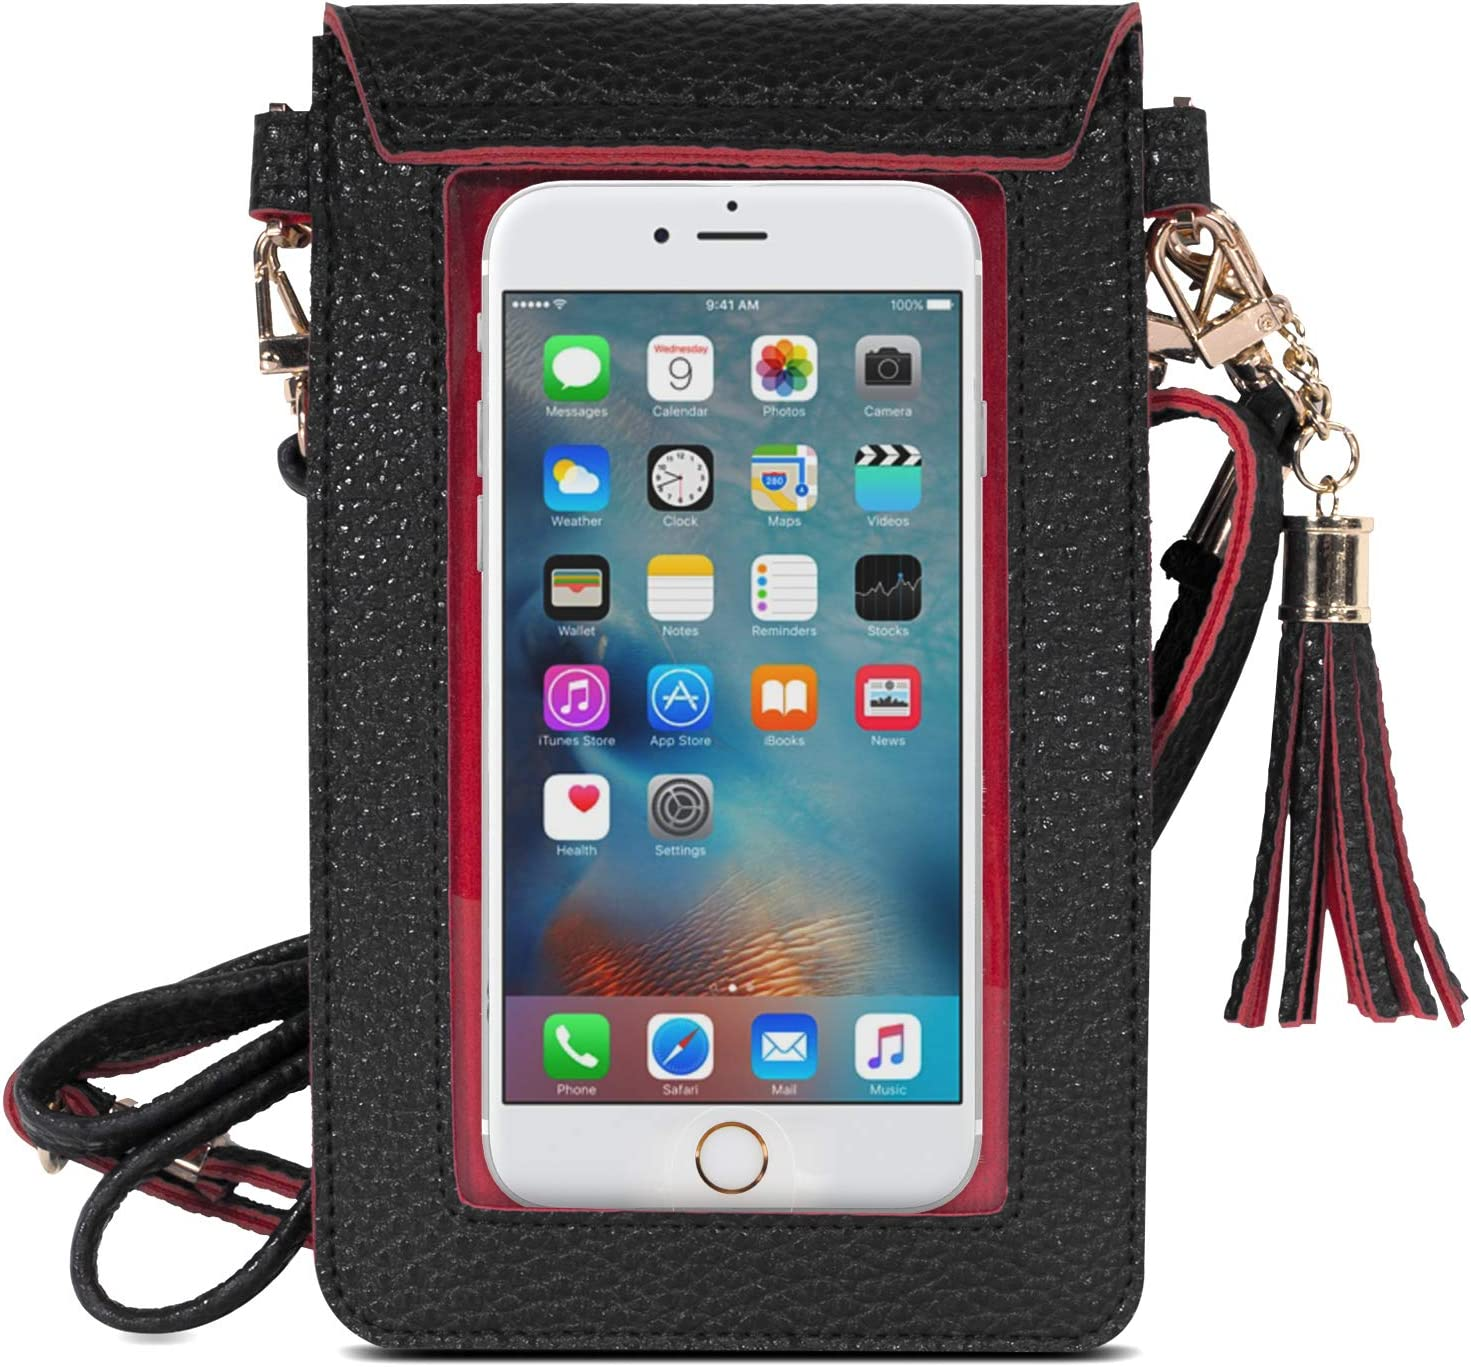 MoKo Cell Phone Bag, PU Leather Crossbody Bag Mini Phone Pouch Fit with iPhone 13 Mini/iPhone 13/iPhone 13 Pro, iPhone 12 Mini, iPhone SE 2020, Galaxy Note 10/S10e/S10/S10P/S20 - Black + Red